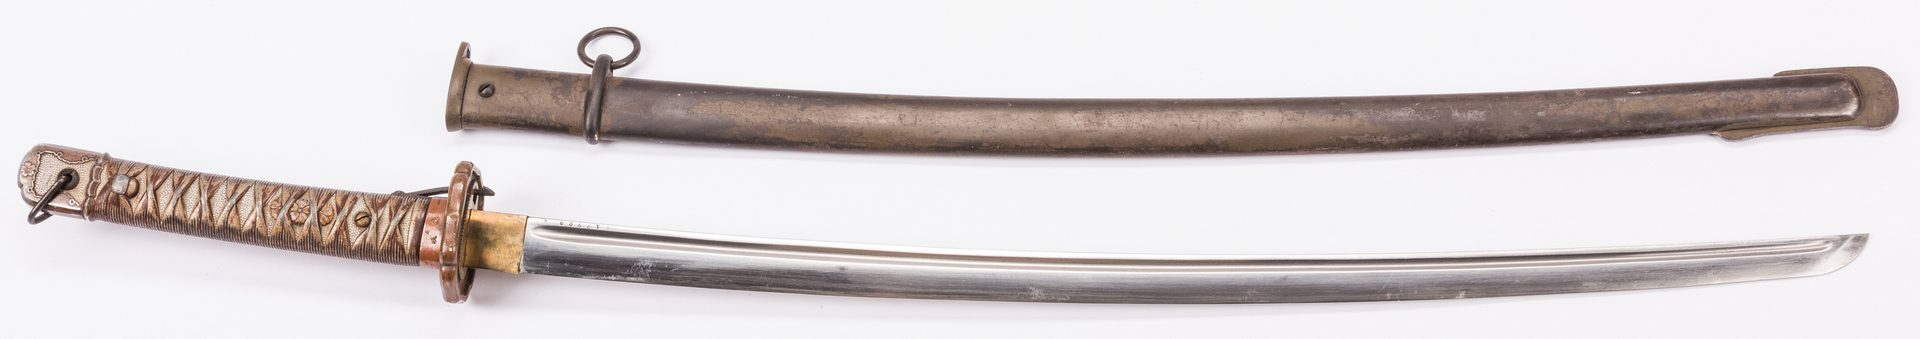 Lot 801: Japanese Type 95 NCO Sword & Welterbach Knife, 2 items